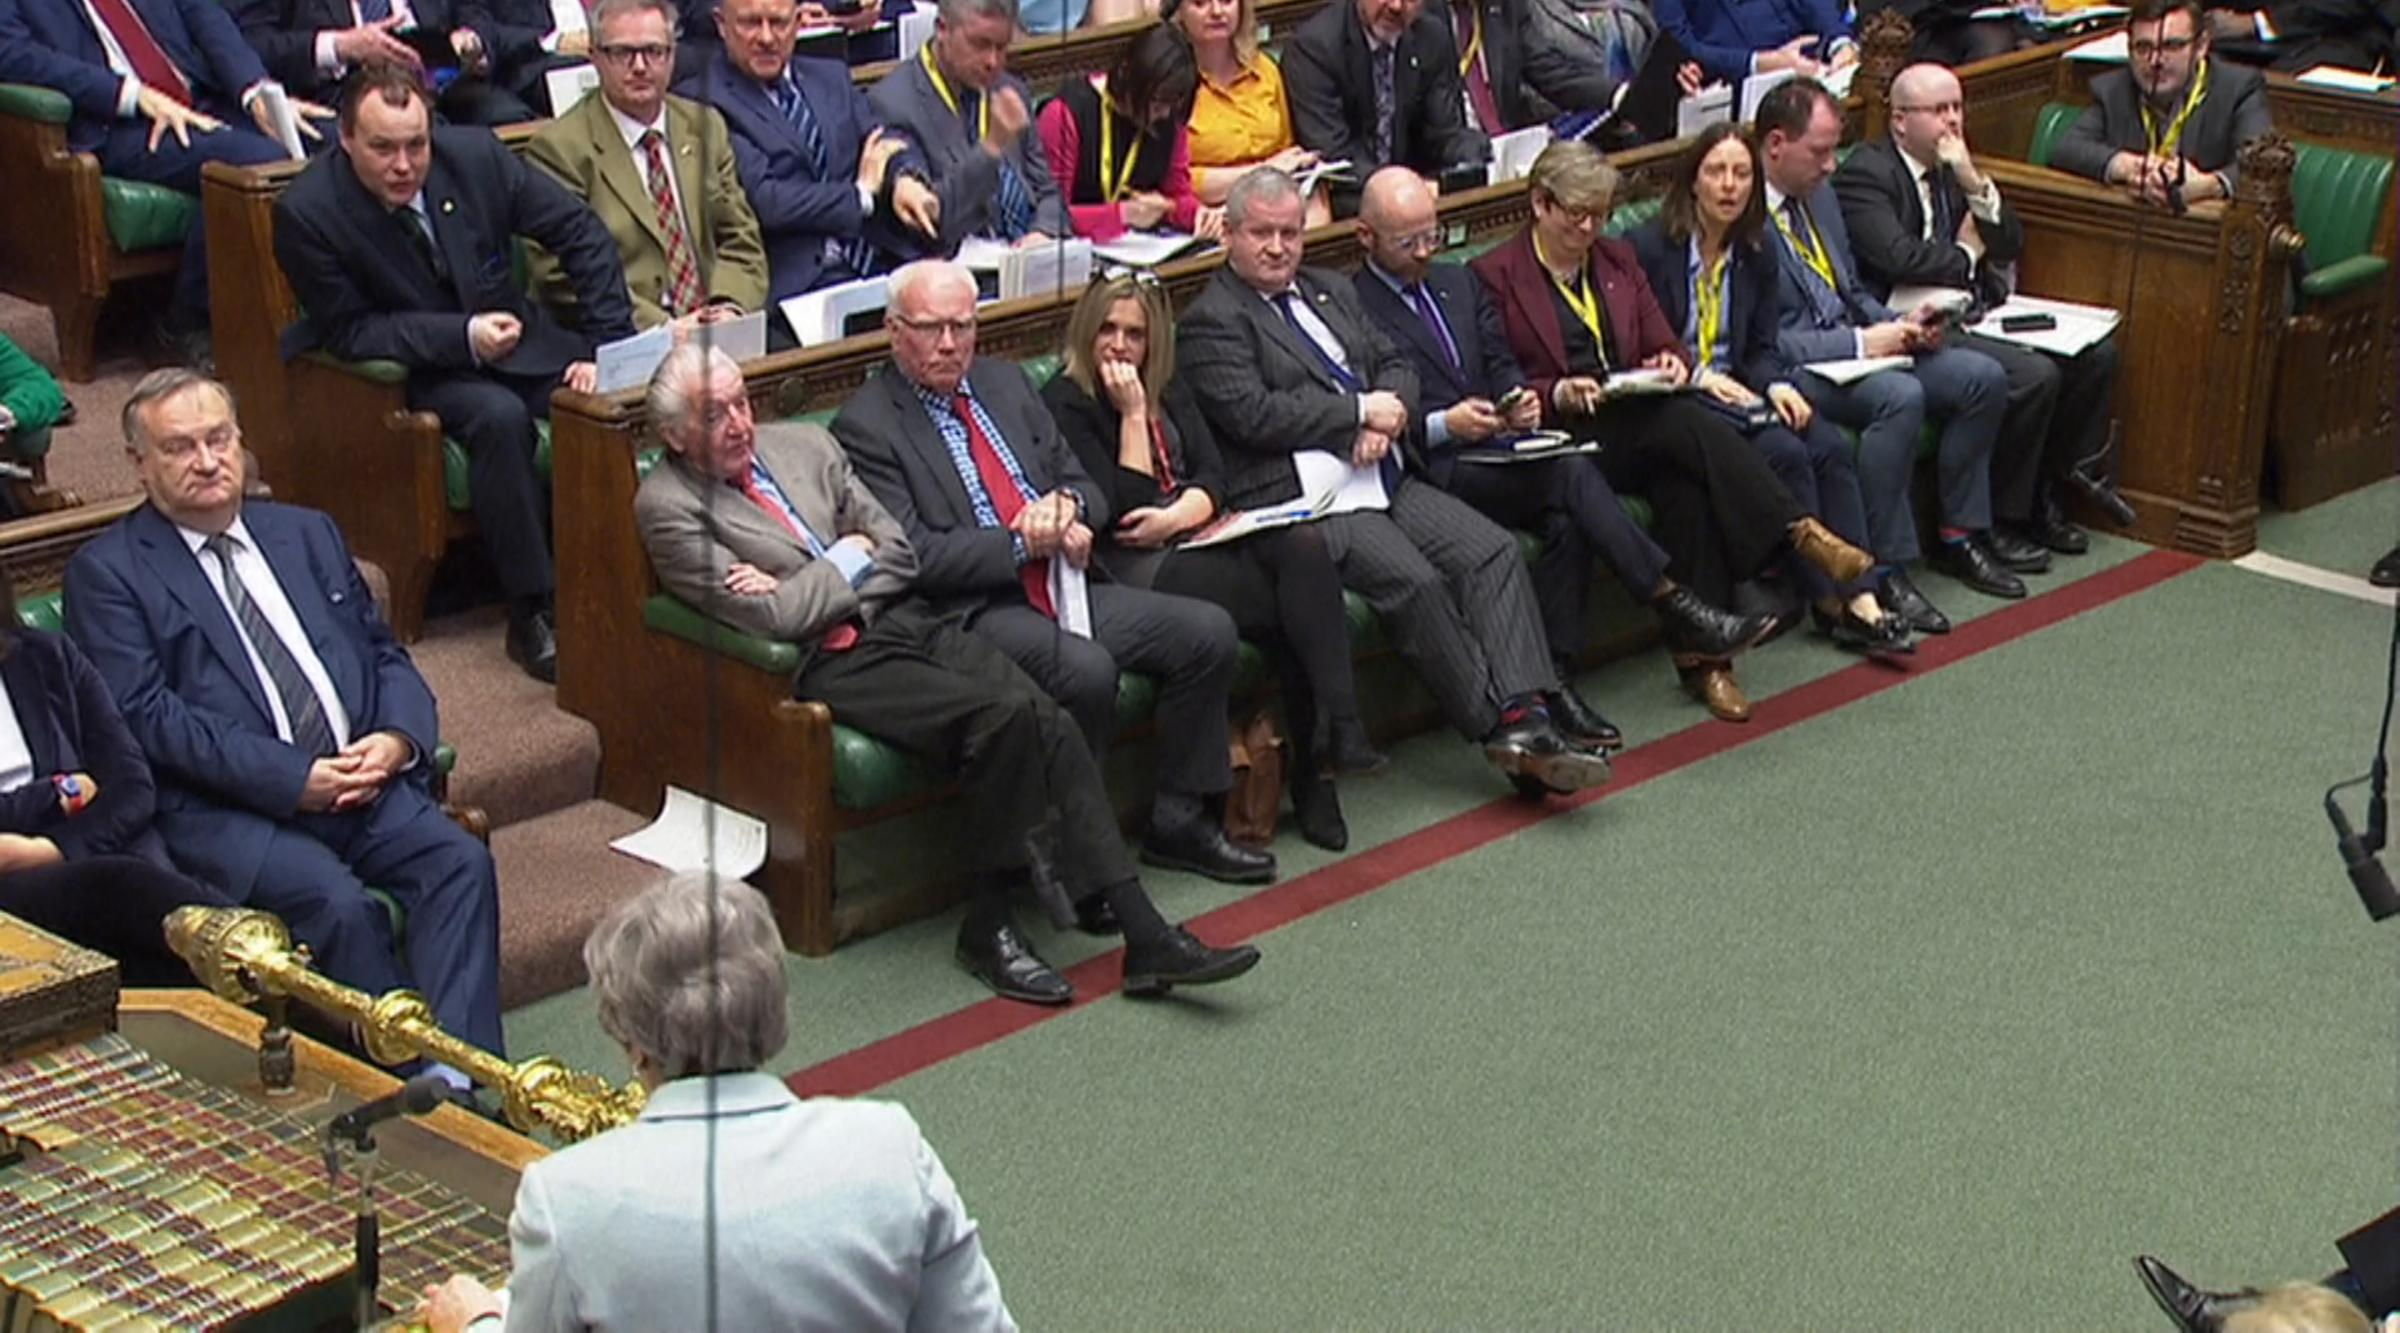 WATCH: Tory MPs shout at SNP to 'go home' to Scotland during Brexit debate